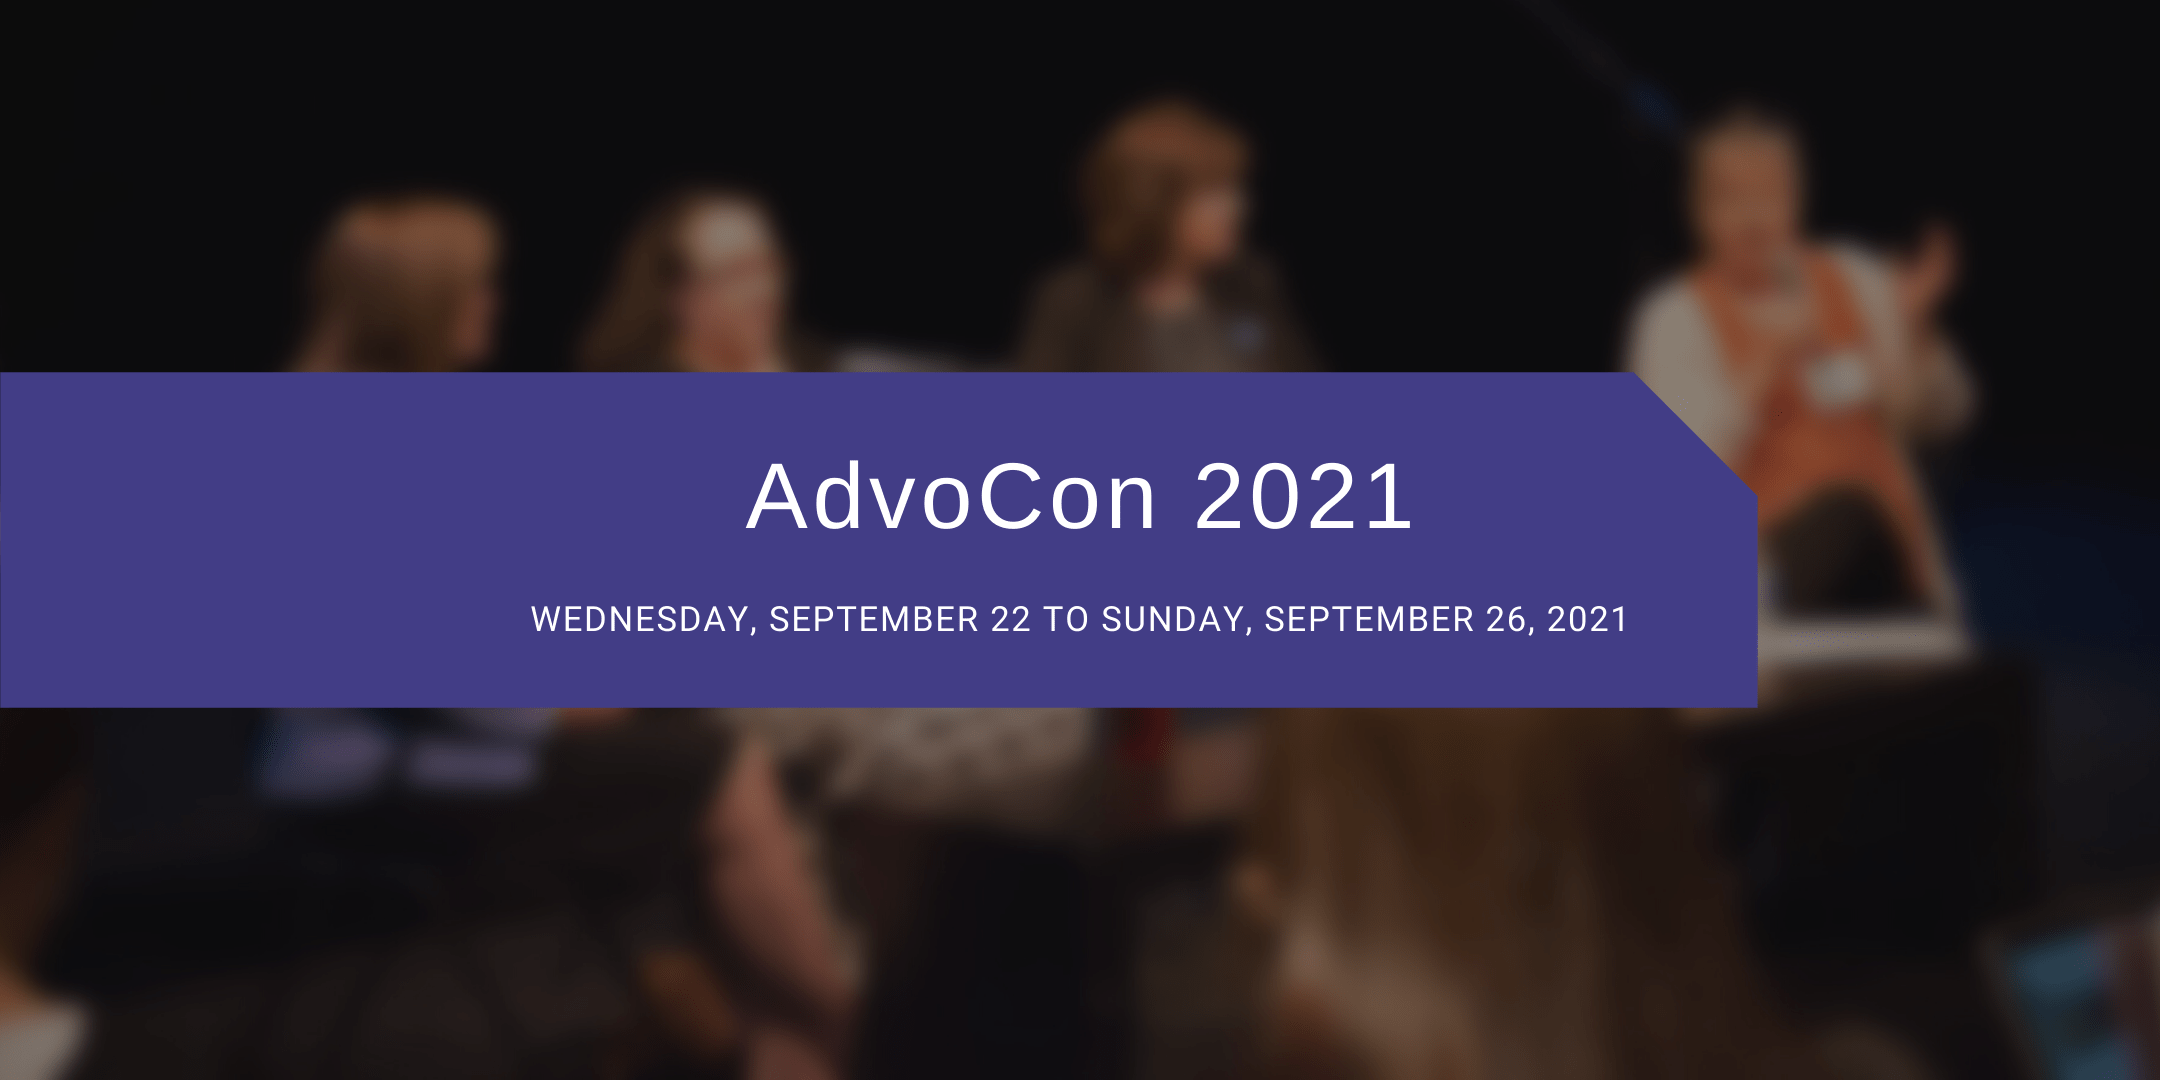 """Blurred image from AdvoCon presentation, overlaid with a purple box that holds text saying, """"AdvoCon 2021 from Wednesday, September 22 to Sunday, September 26, 2021."""""""